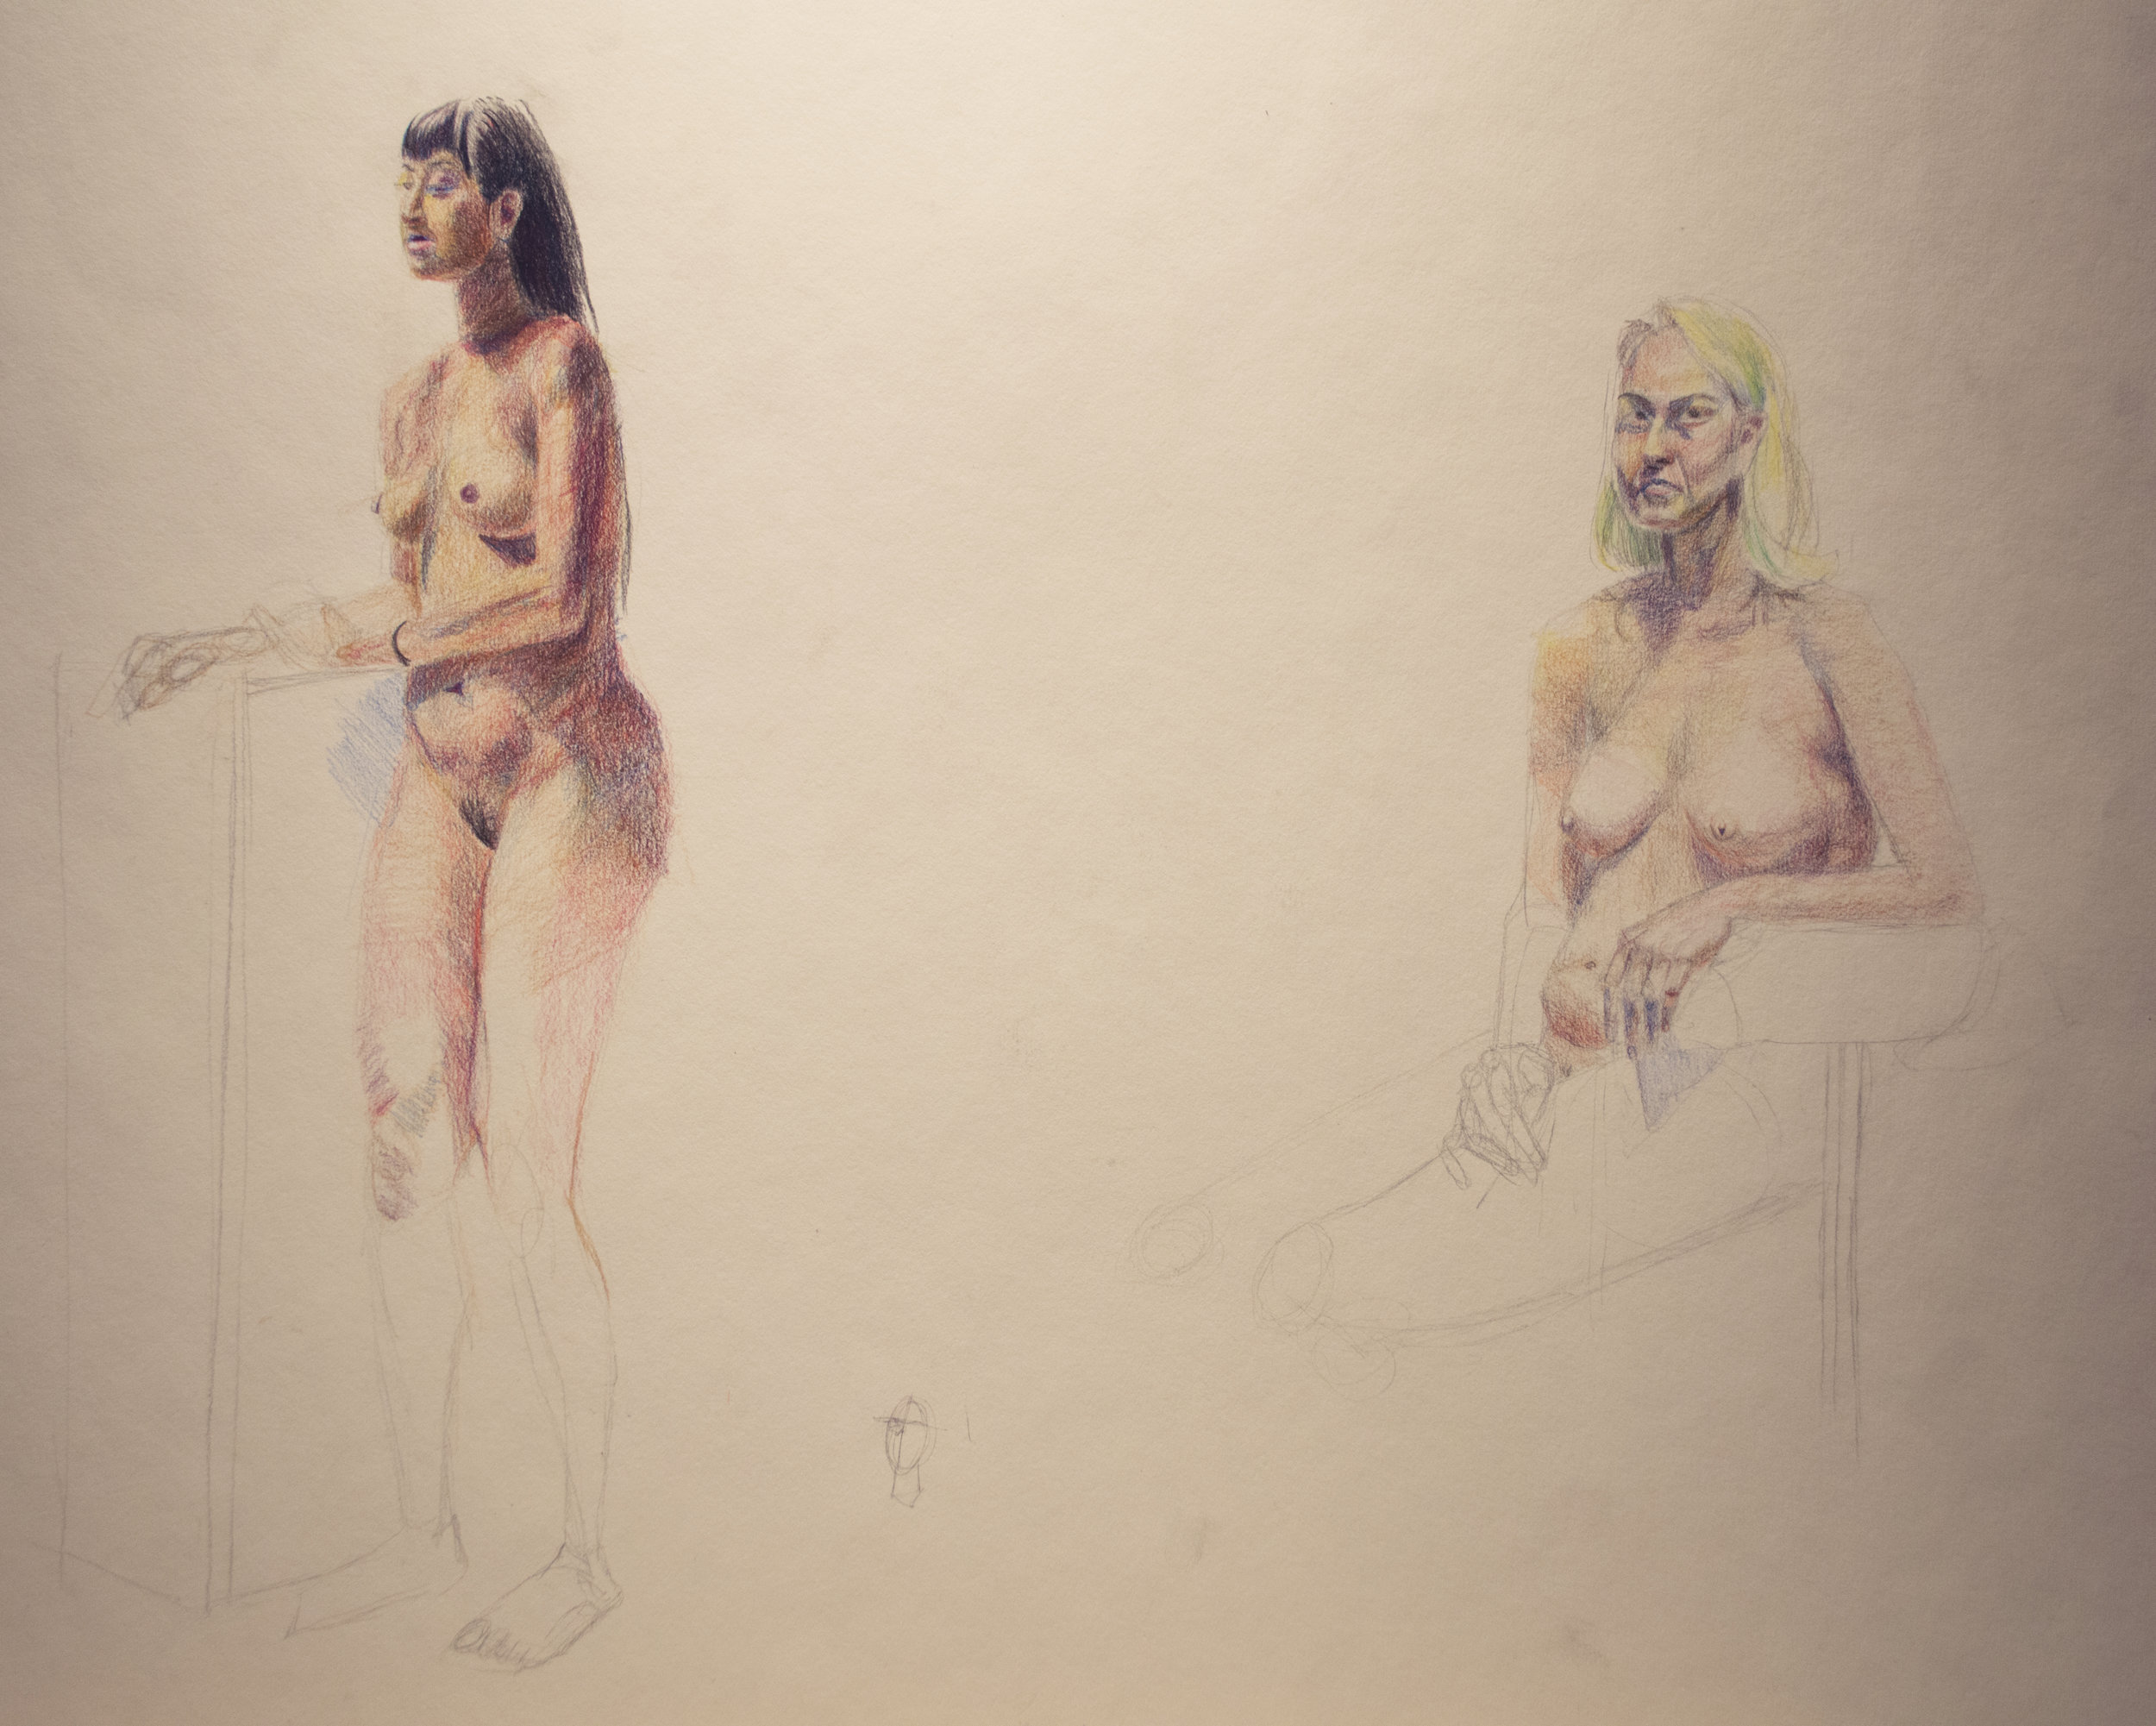 Werner_Levi_Lifedrawing8.jpg